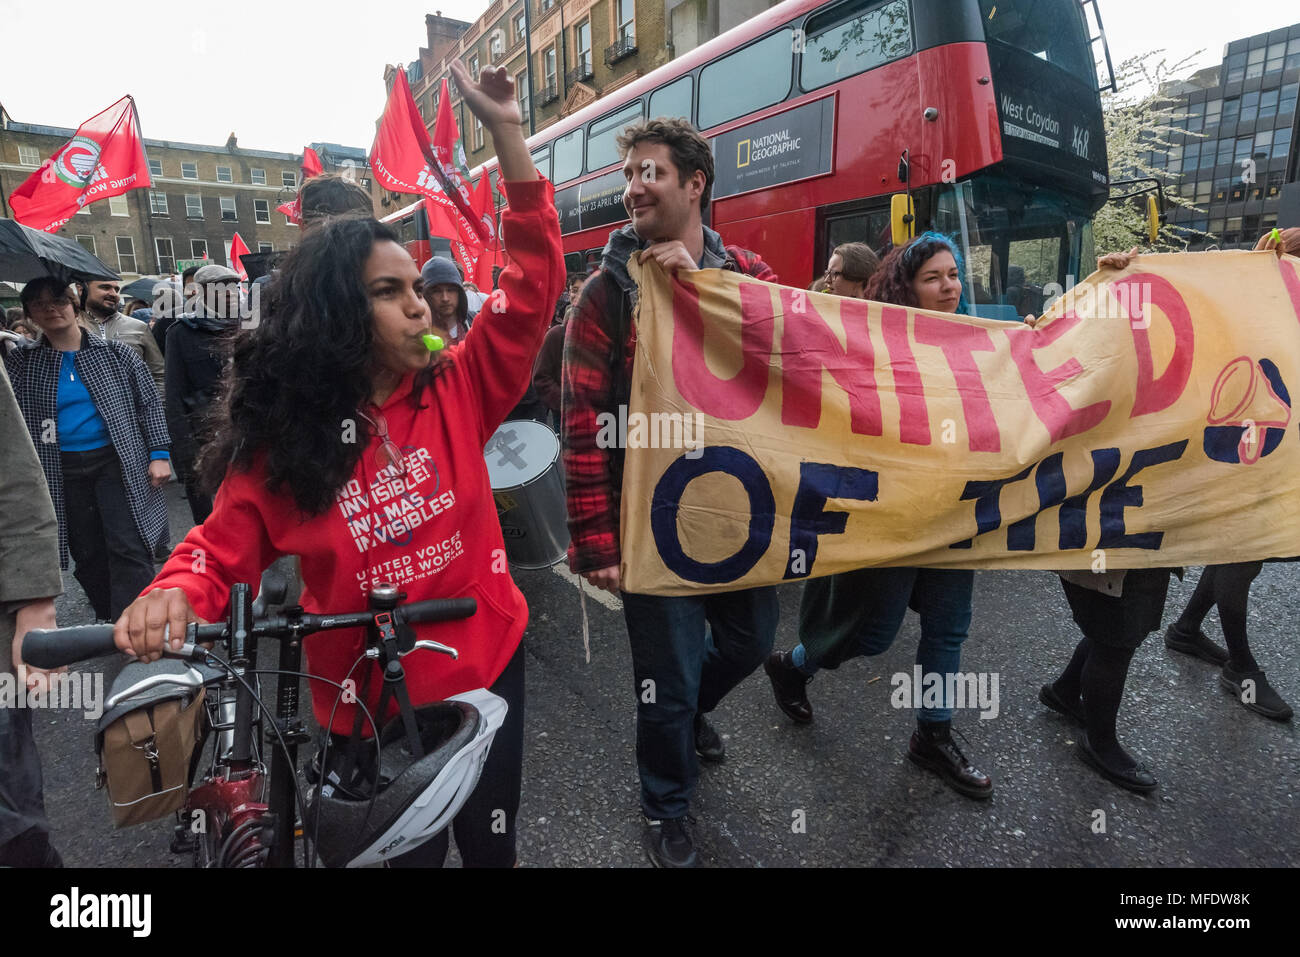 London, UK. 25th April 2018. People carry the  UVW banner on the march from the rally by workers, students and other trade unionists supporting over 100 cleaners, porters, security officers, receptionists, gardeners, post room staff and audiovisual staff in the Independent Workers Union of Great Britain - IWGB at the end of the first day of a two day strike at the University of London central administration. The workers, employed by various outsourcing companies are demanding to be directly employed by the University, and receive the same conditions and benefits as directly employed colleagues - Stock Image